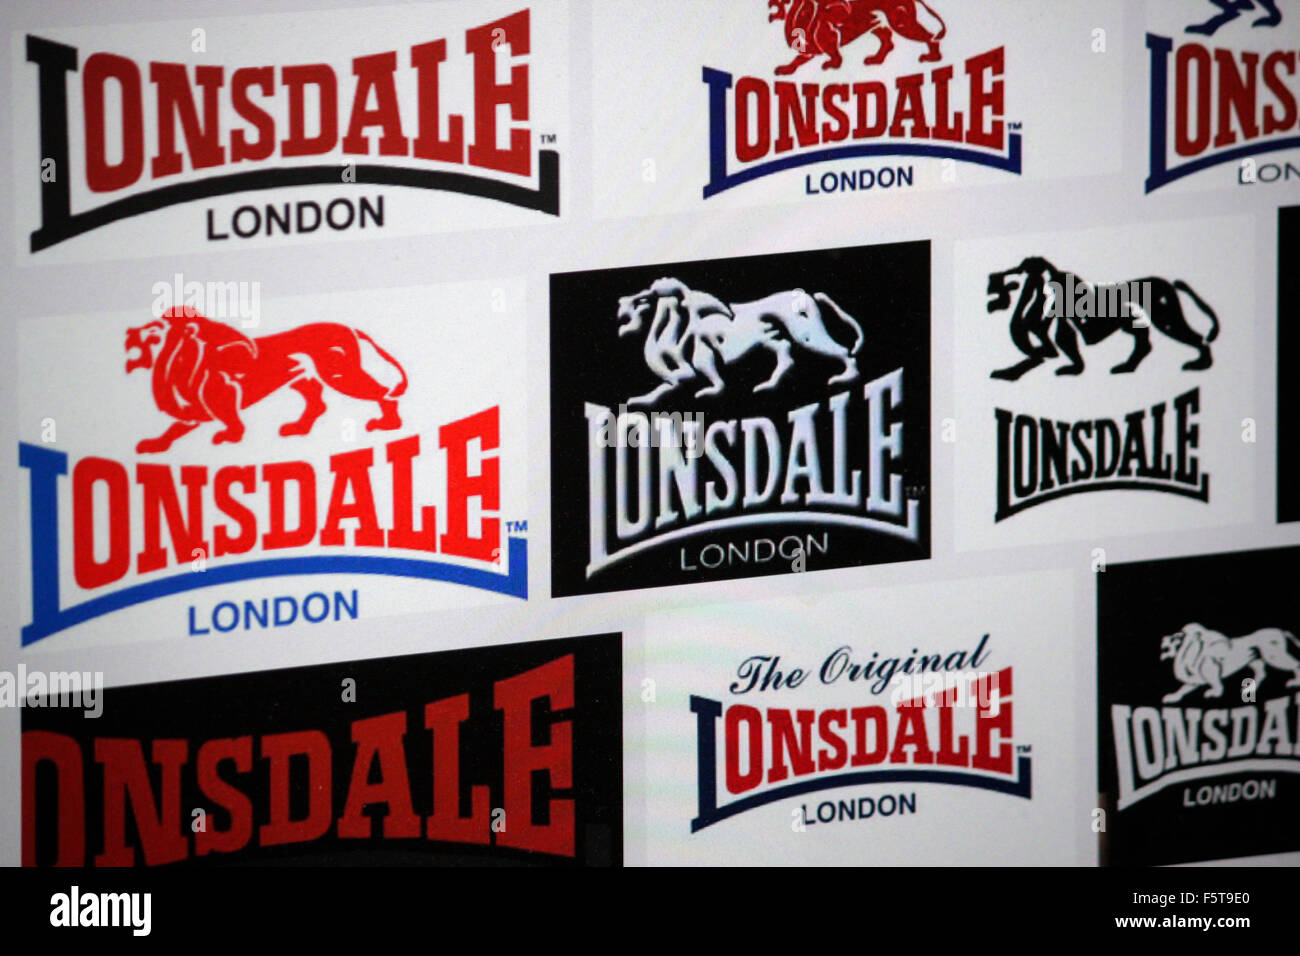 Lonsdale - a trademark with a legendary history